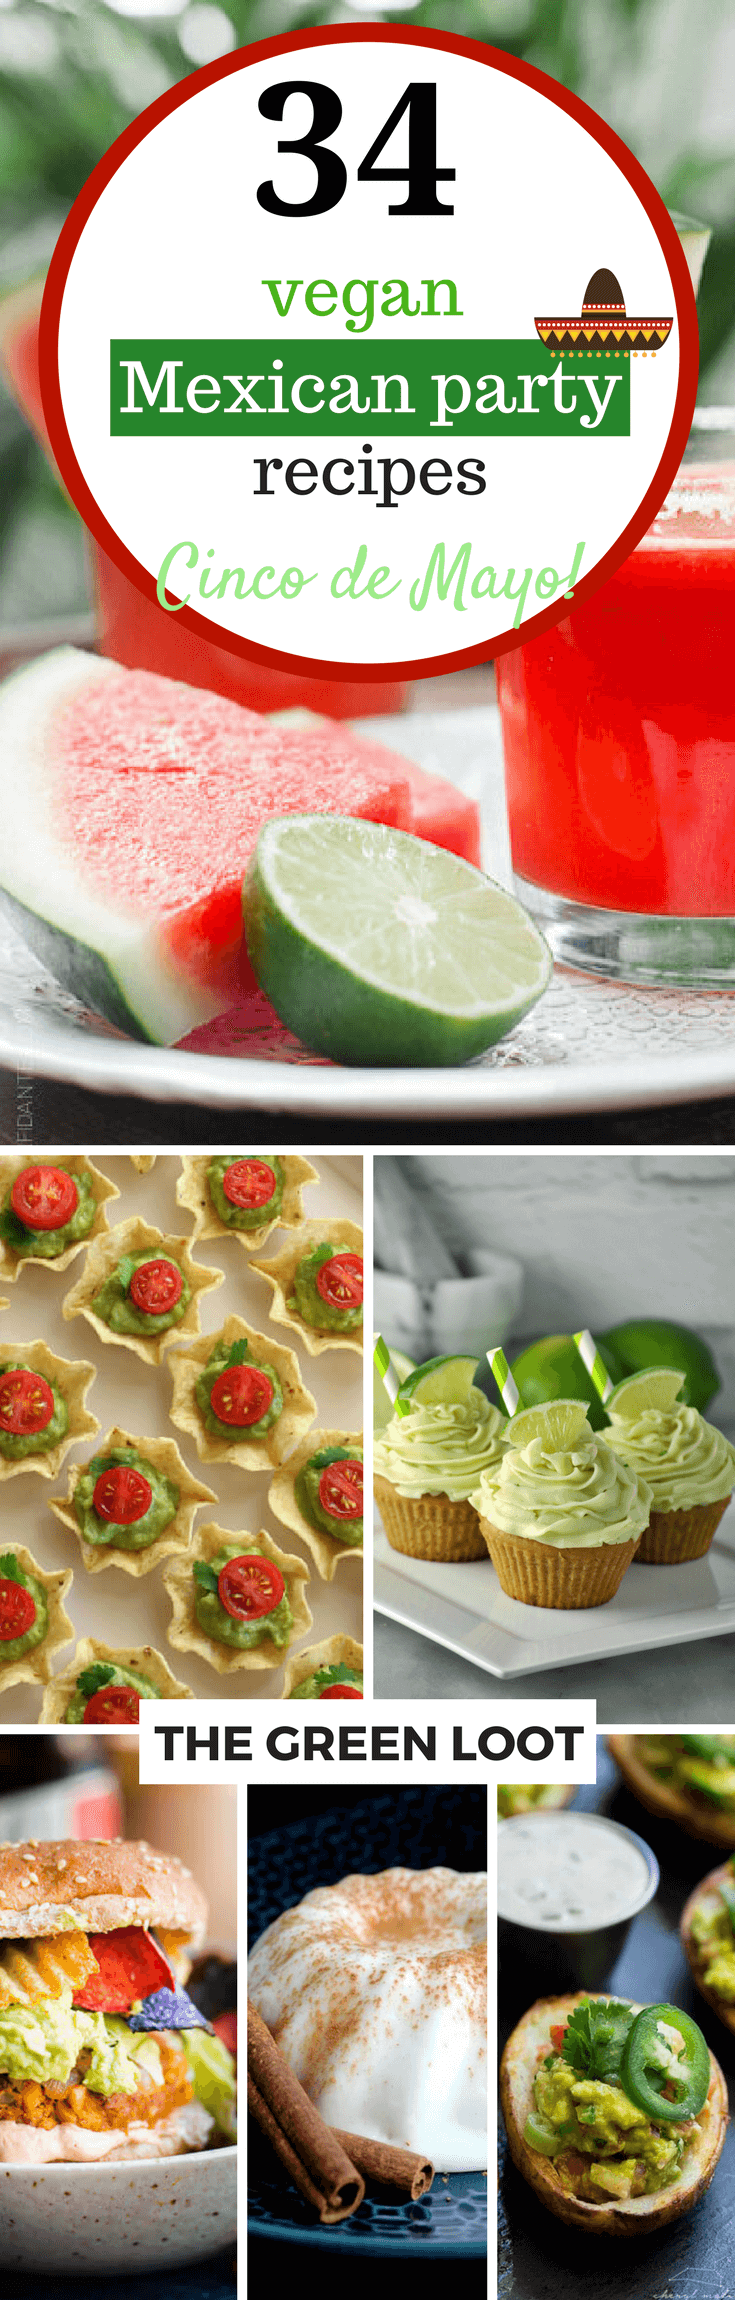 These Vegan Mexican Party Recipes are perfect for Cinco de Mayo or any Summer Party menu! Easy and traditional appetizers, desserts, drinks that are super delicious and fun! Get the best vegan Mexican Party Food ideas and recipes, now! | The Green Loot #vegan #cincodemayo